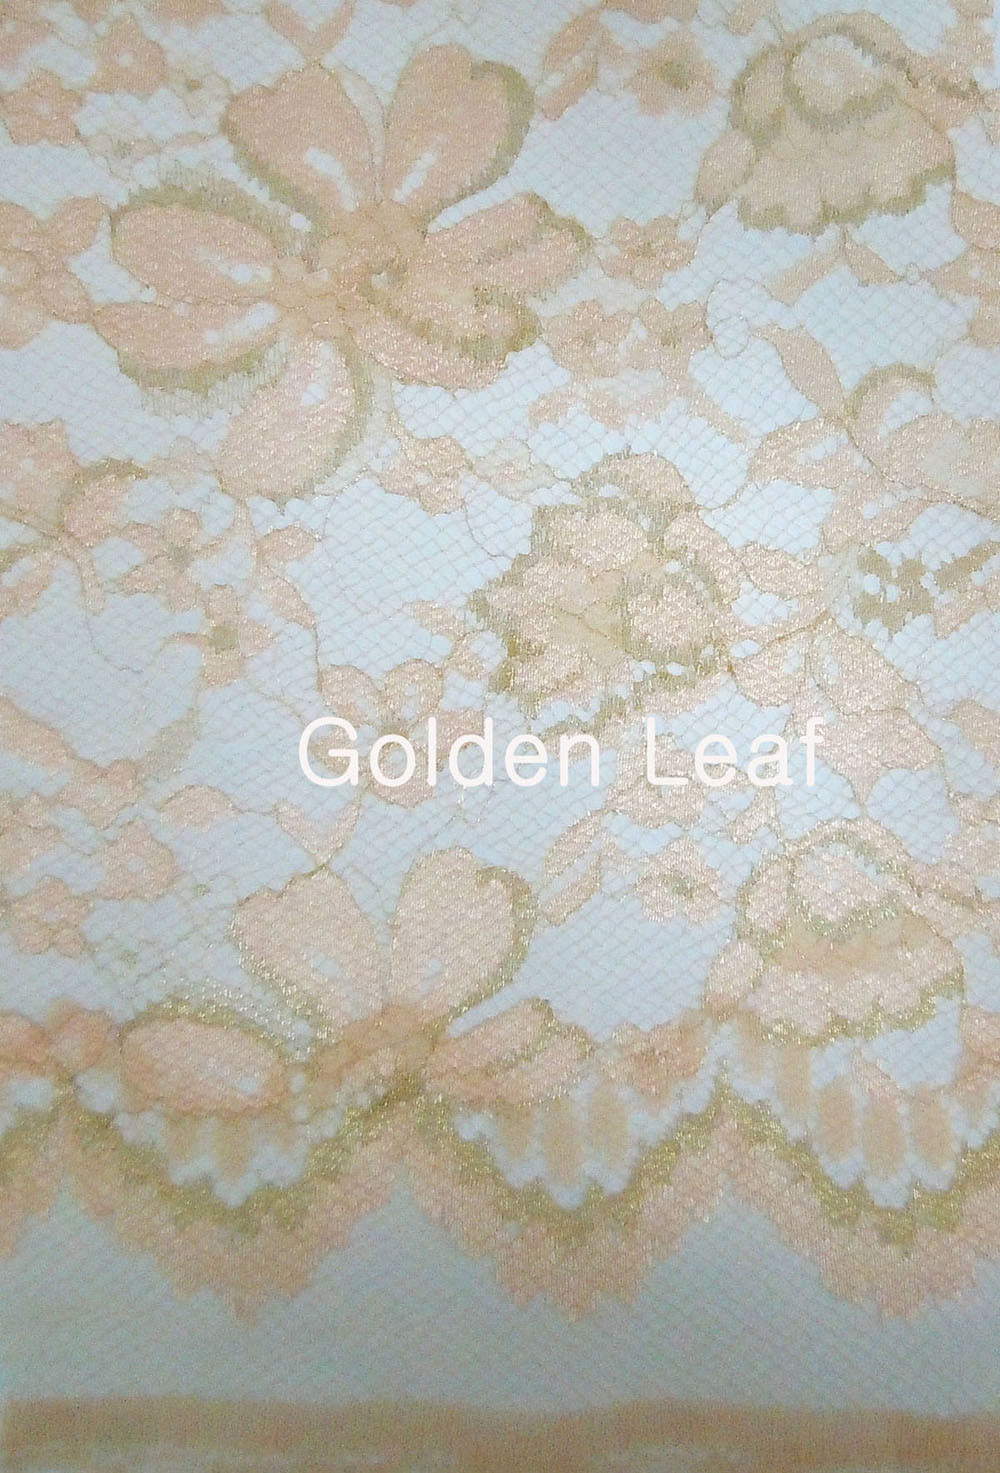 Others shaoxing yuxi imp exp co ltd page 1 for Wedding dress lace fabric